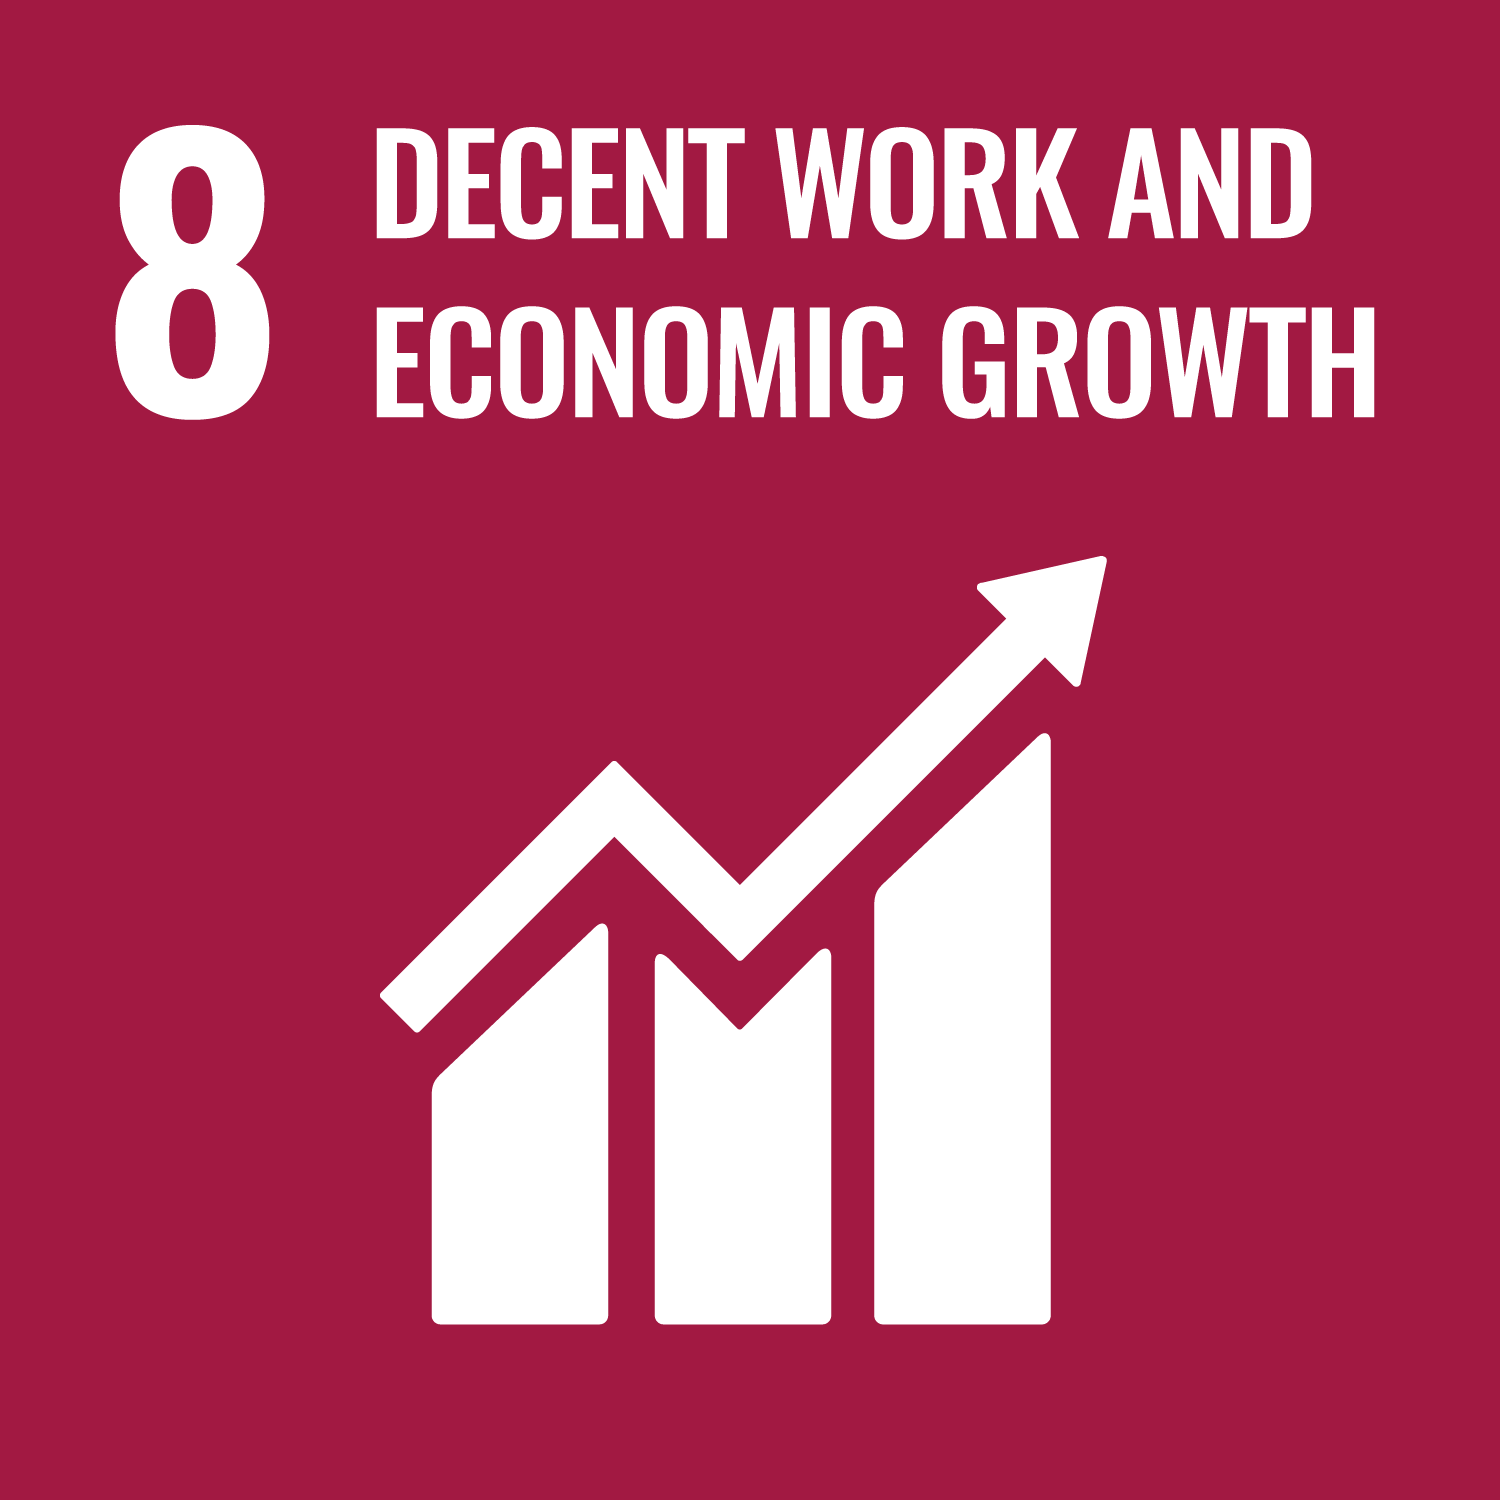 Sustainable Development Goals – Decent work and economic growth